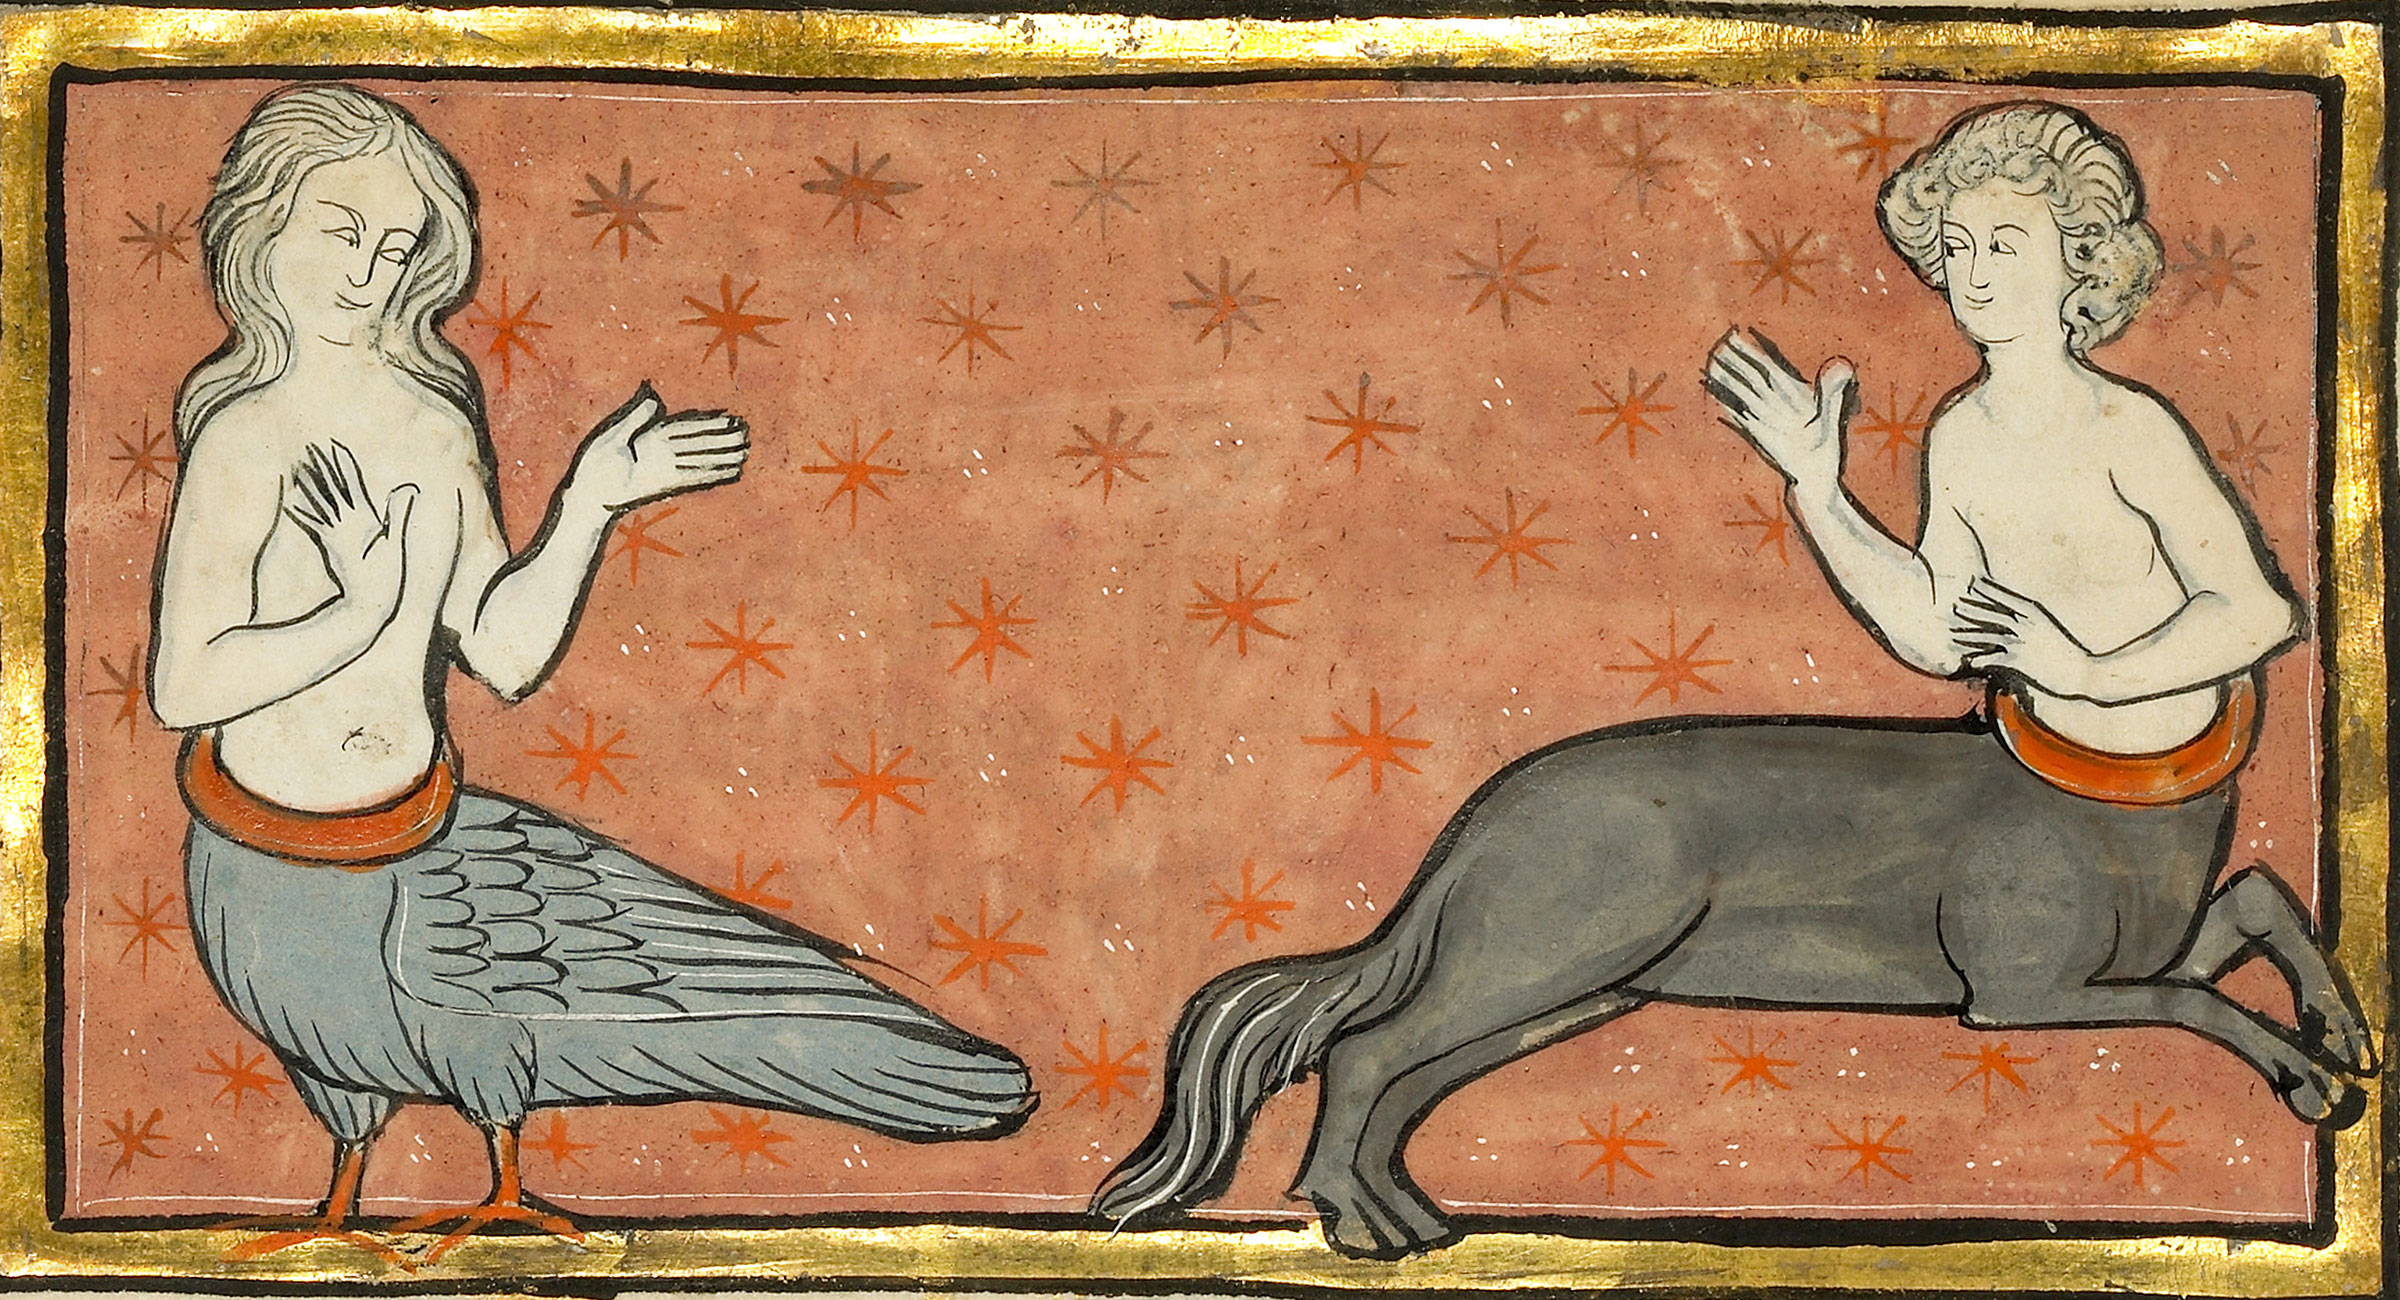 A Siren and a Centaur, two chimeras of Greek myth, in an illustration from the fourth quarter of the 13th century from the region of Flanders. Getty Research Institute/Science Source